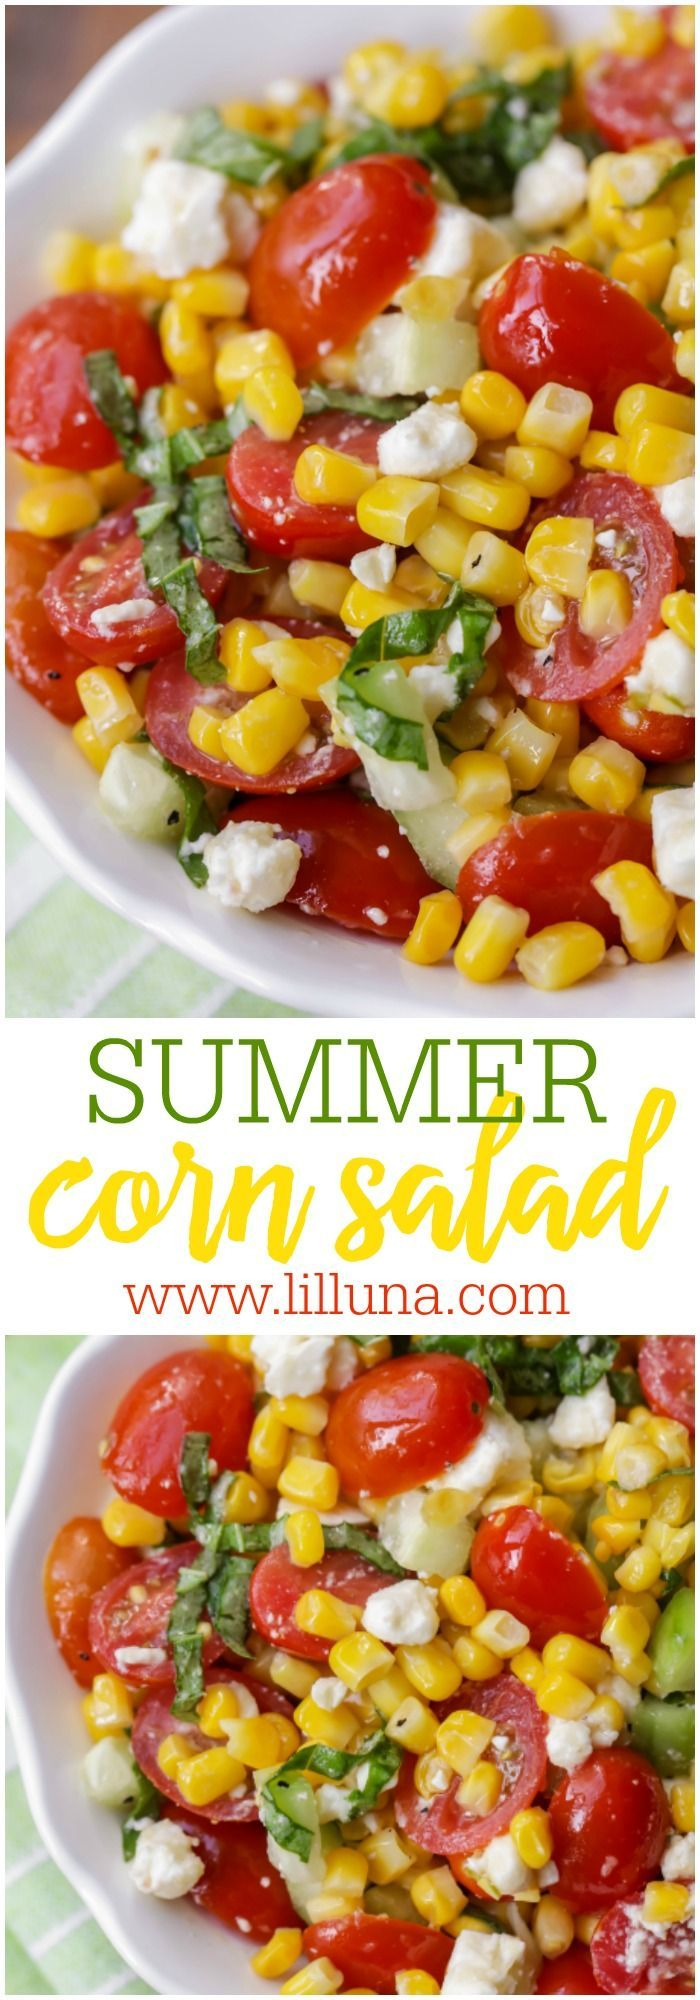 nice Summer Corn Salad - a light, flavorful salad filled with corn, tomatoes, feta, b...by http://dezdemooncooking.gdn